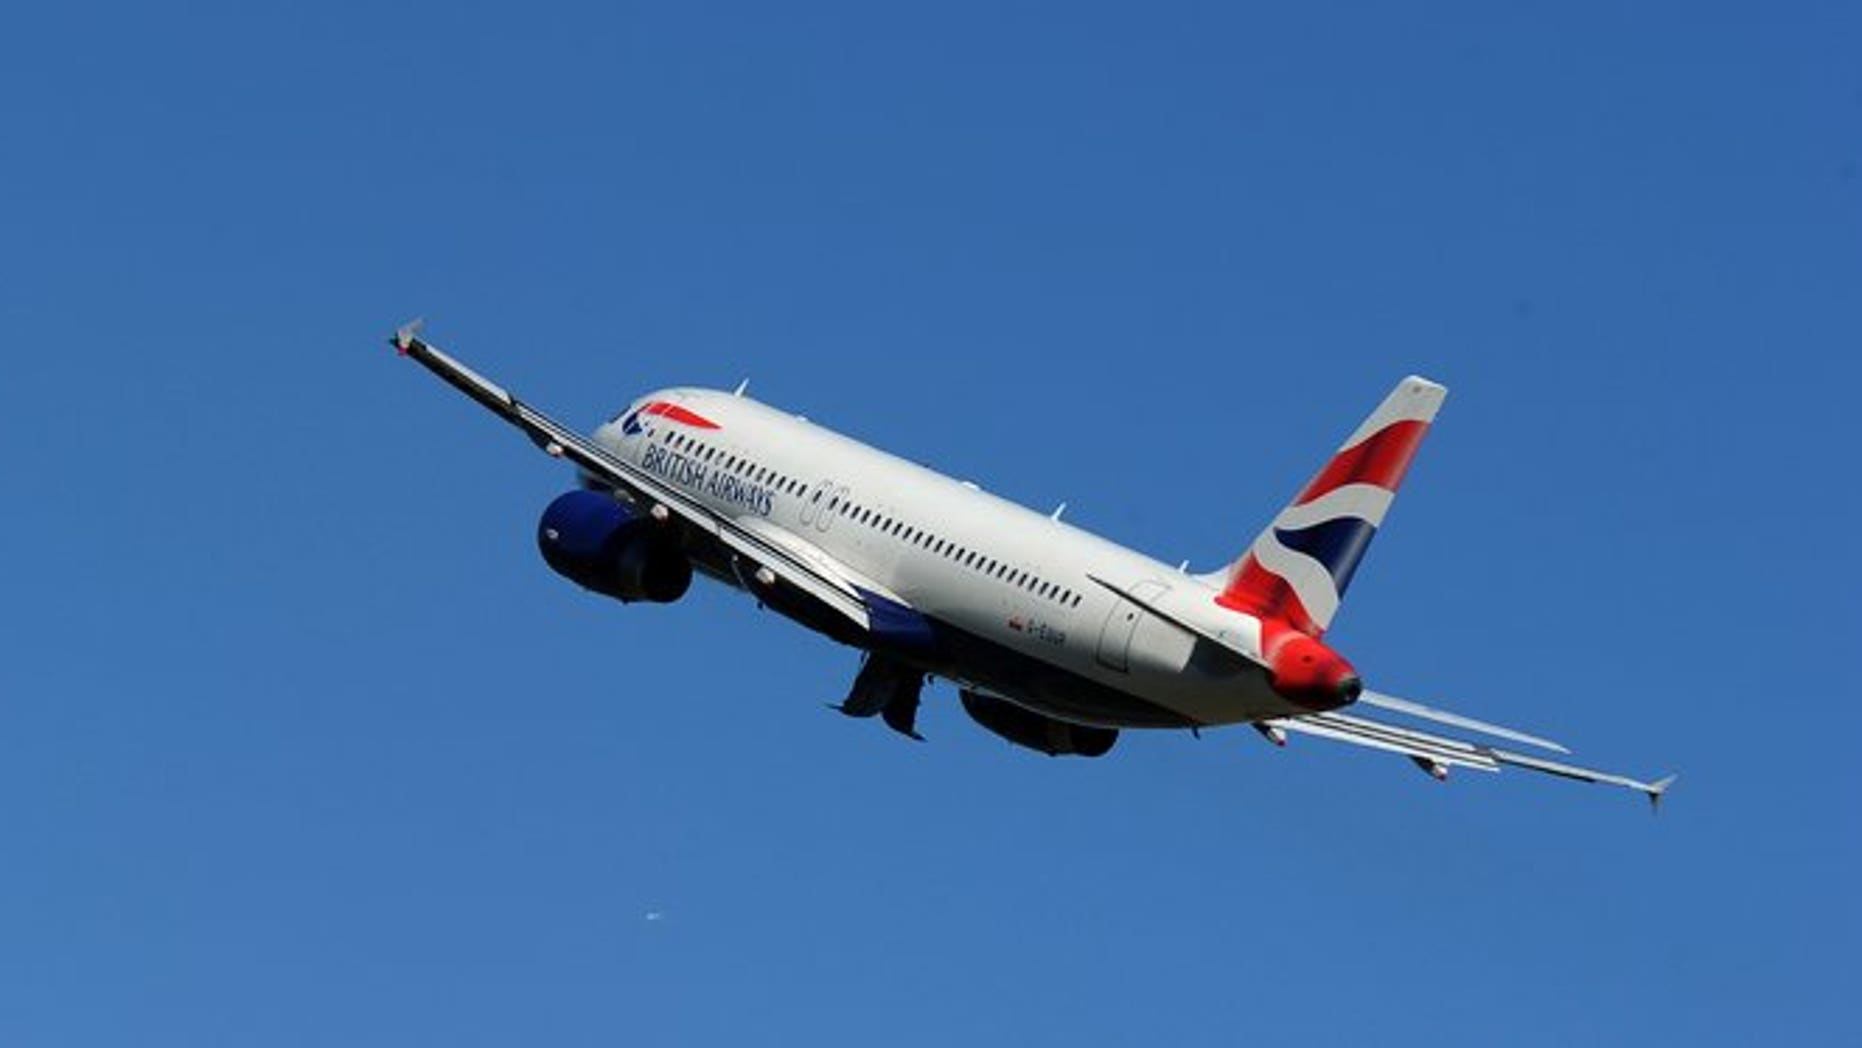 A British Airways passenger plane takes off from Heathrow Airport, west of London, on May 24, 2010. Sri Lanka Cricket said Tuesday it will investigate reports a drunk player tried to open a cabin door at 35,000 feet (10,600 metres) during a flight from St Lucia to London.